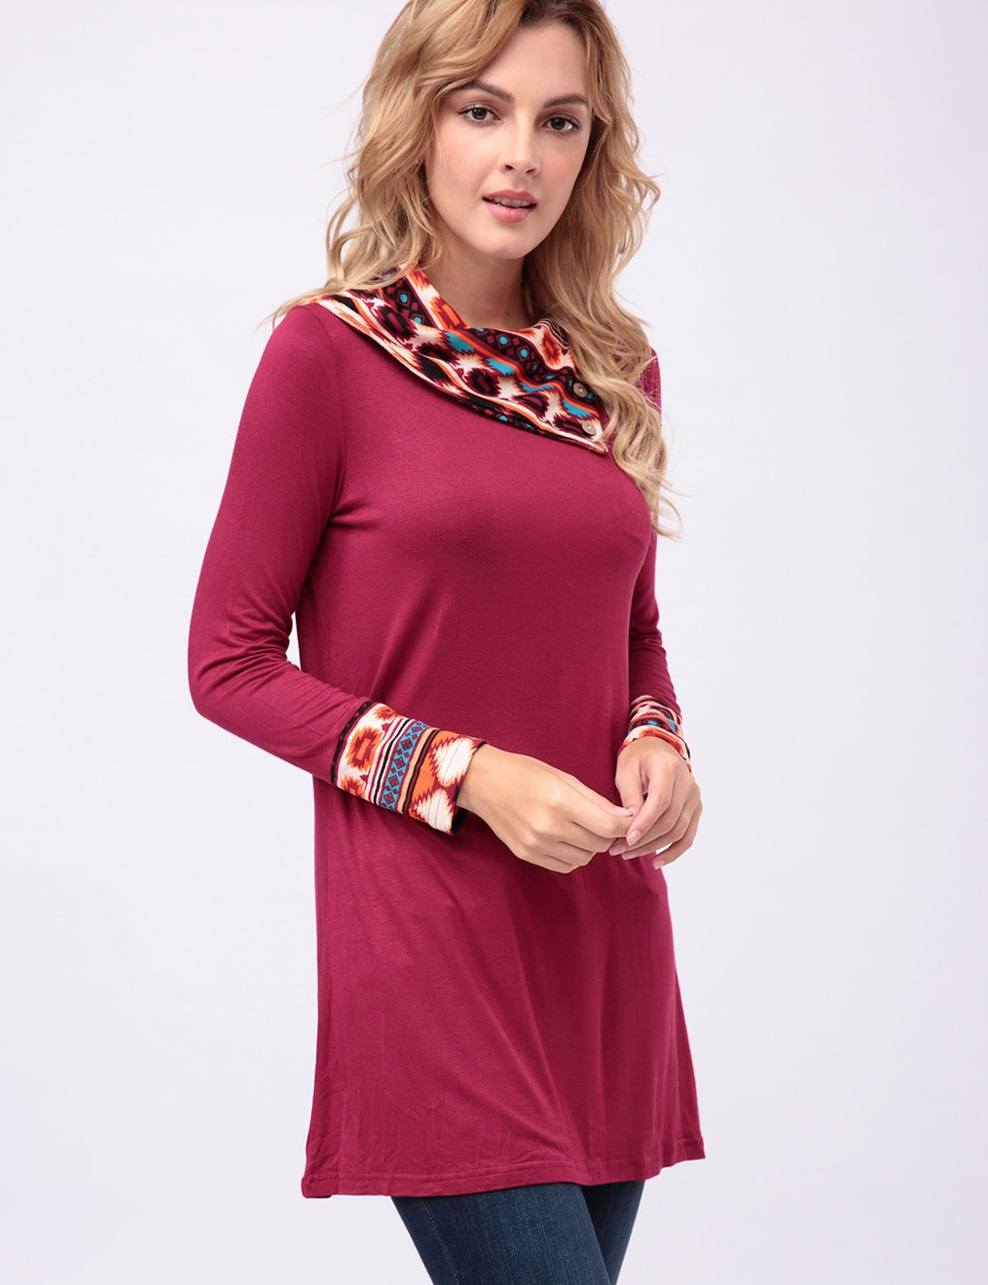 Easy tunic top is perfect for fall's weekend events